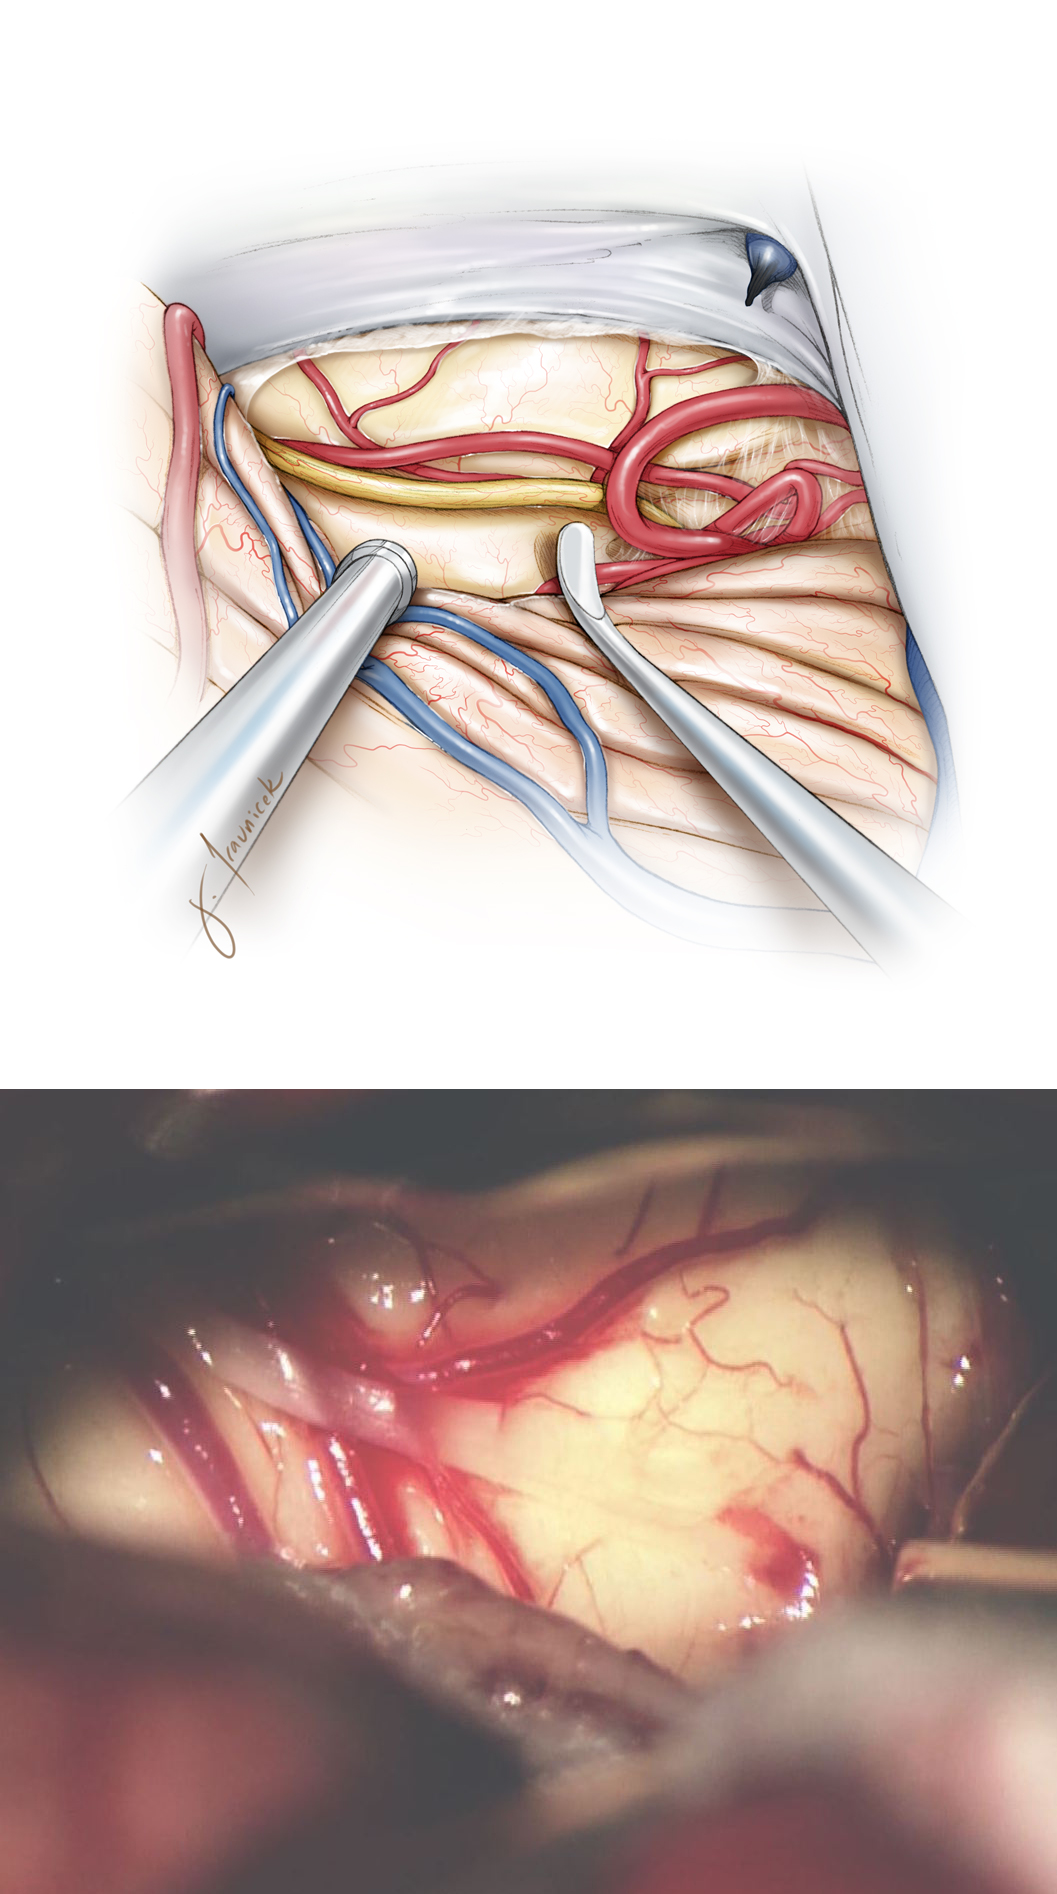 Figure 4: The trochlear nerve is identified. A supratrochlear or infratrochlear working channel is selected based on the location of the lesion to the nerve. Intraoperative navigation is important for this tumor localization. The branches of the superior cerebellar artery are protected.